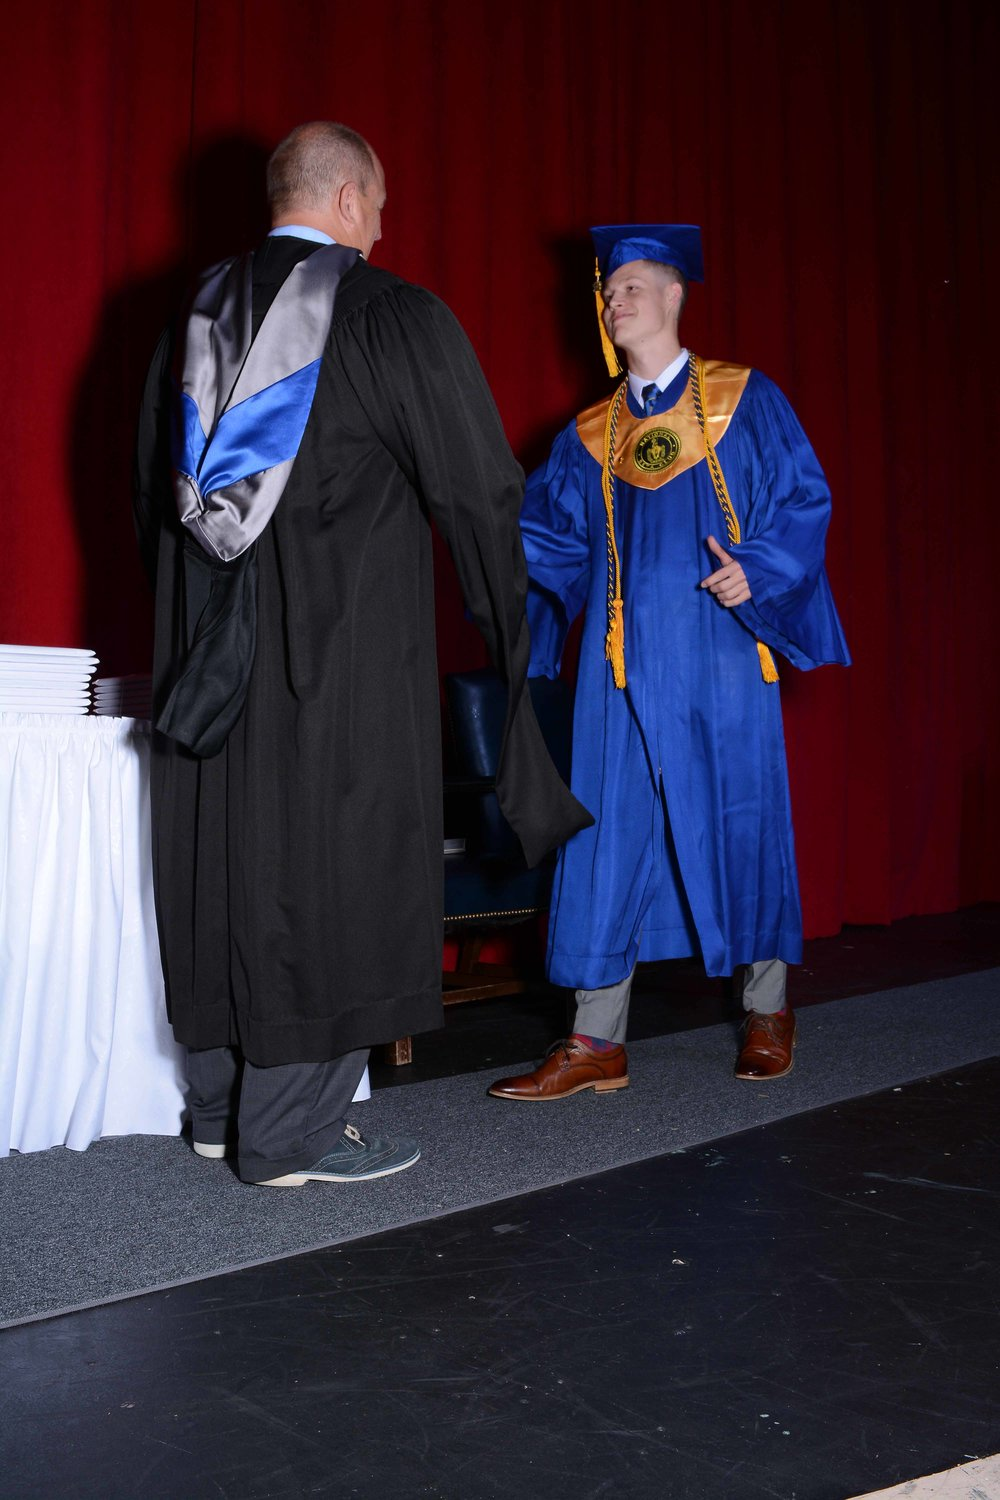 May14 Commencement126.jpg